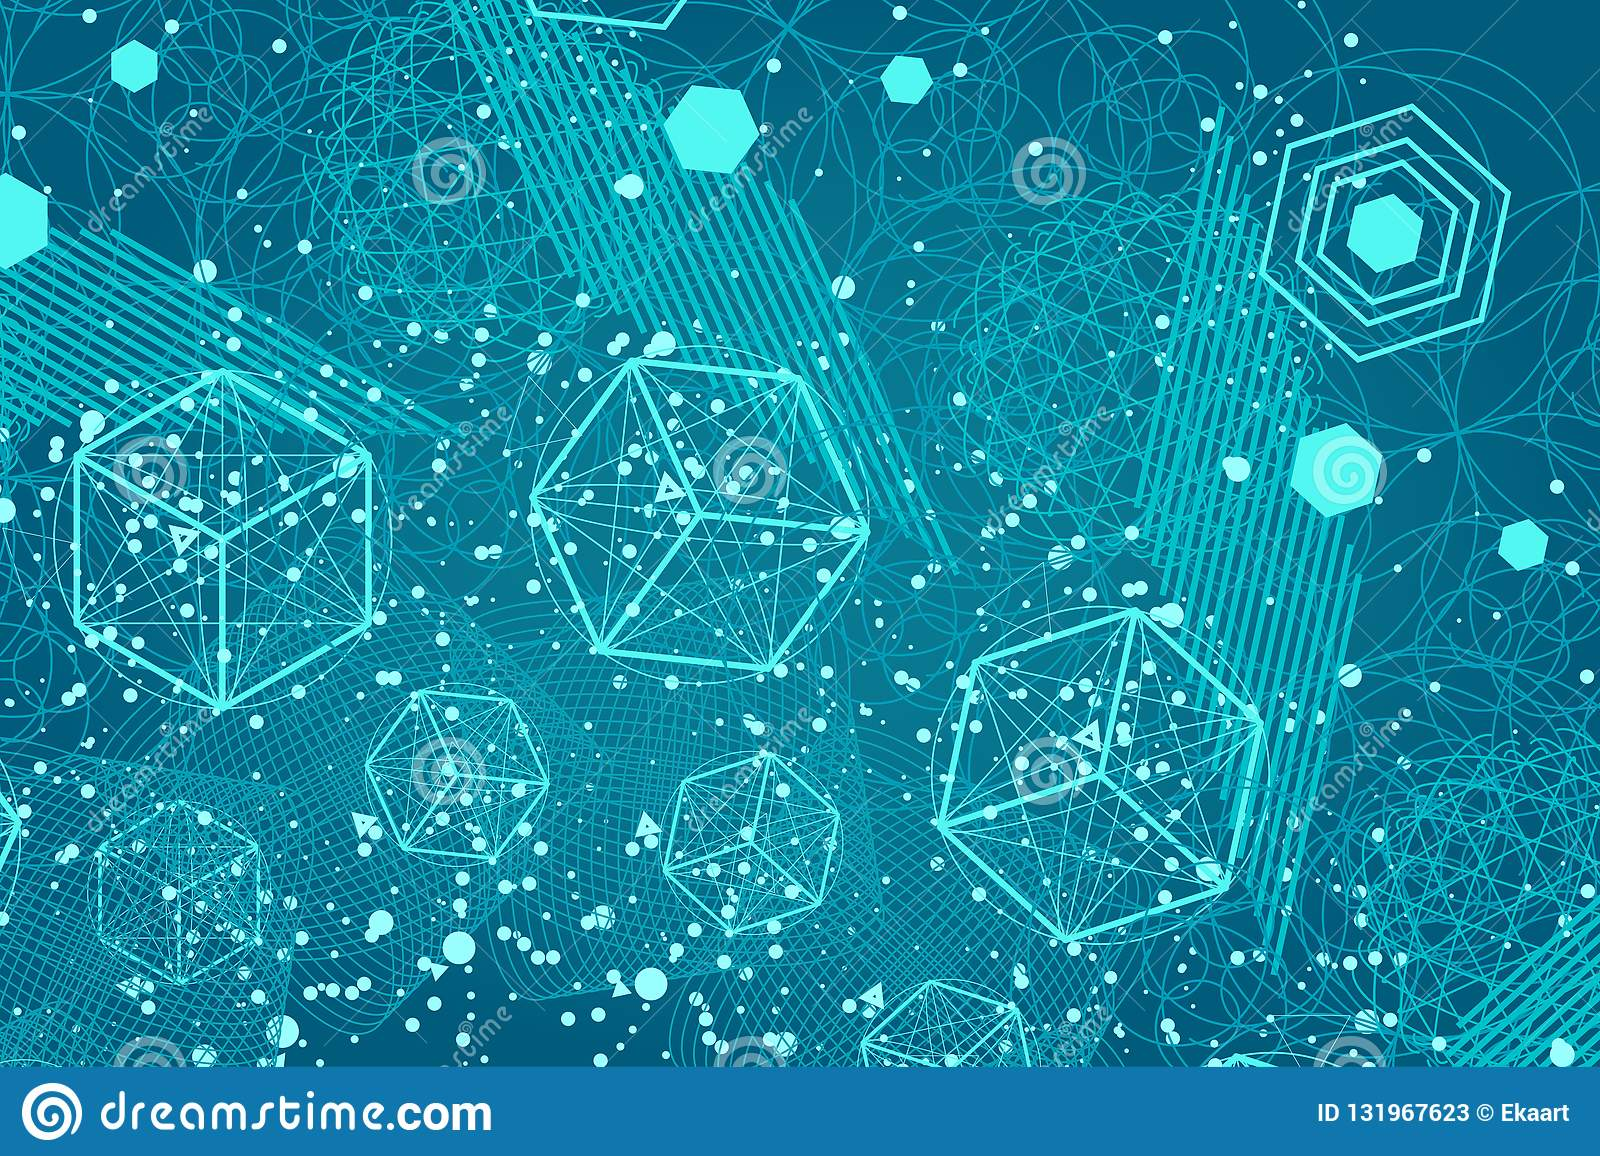 the science and mathematics abstract background stock vector illustration of cube ancient 131967623 https www dreamstime com science mathematics abstract background circles cube triangles lot lines sacred geometry backdrop chemistry image131967623